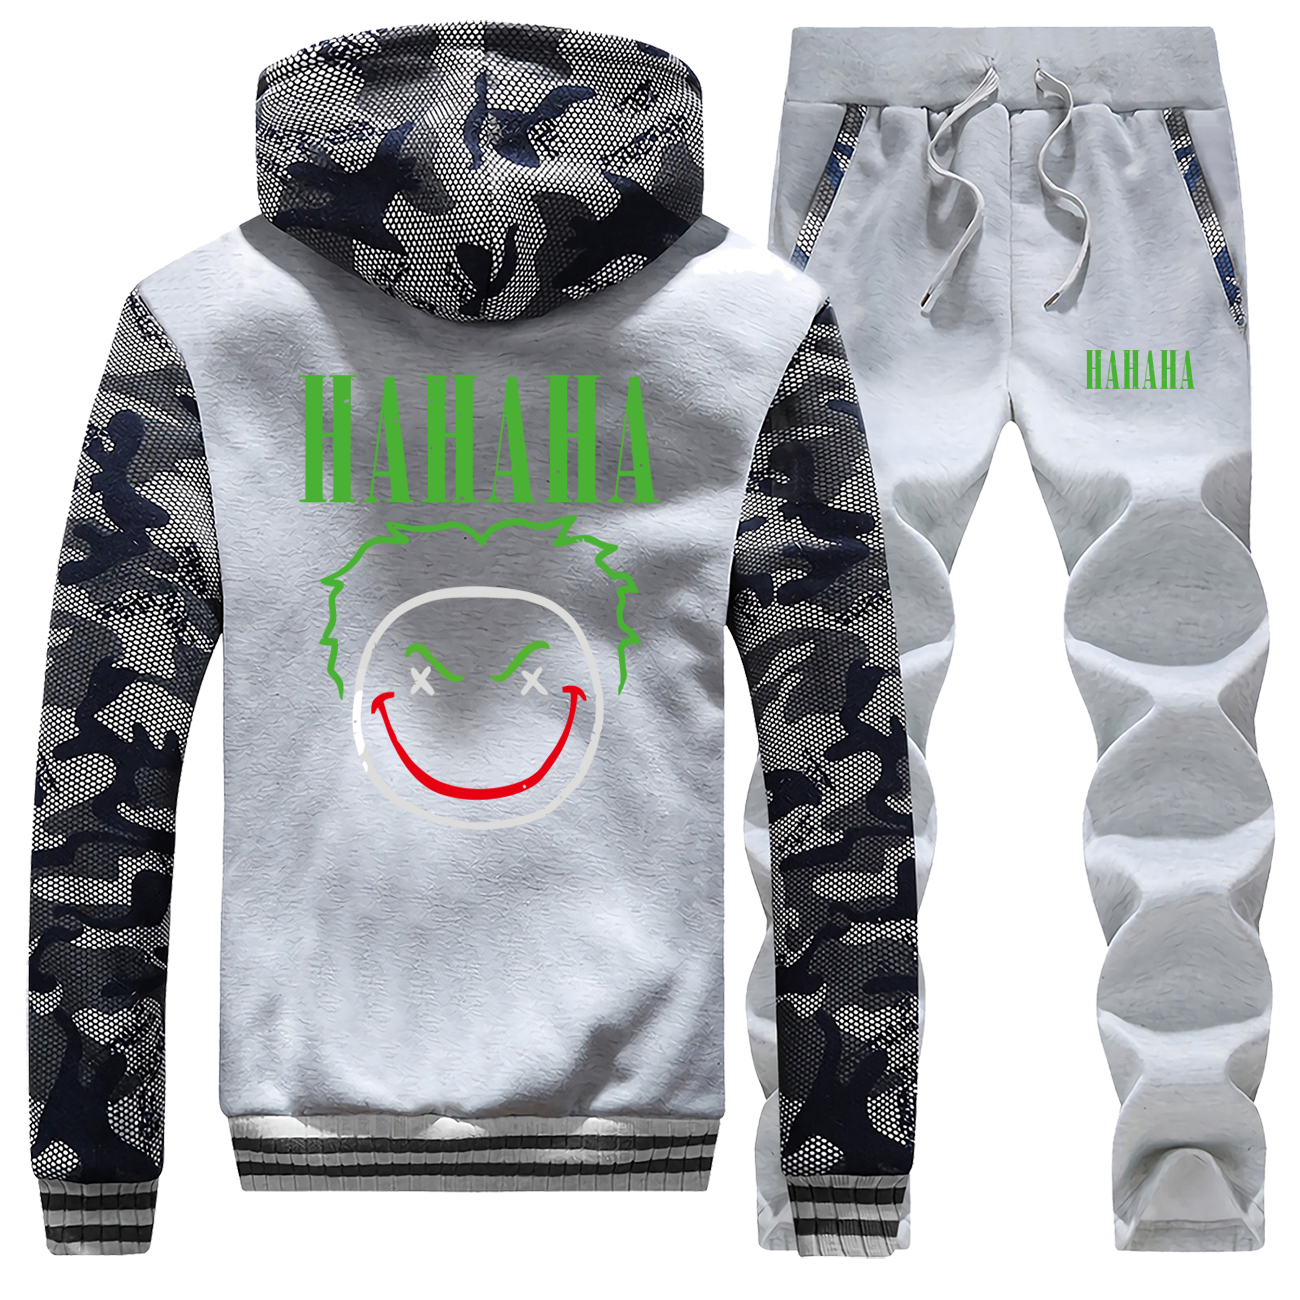 Joker Male Set Joaquin Camo Jacketd Cartoon Joker Pants Sweatshirt Fashion HAHAHA Print Sweatsuit 2019 Winter Fleece 2 Piece Set